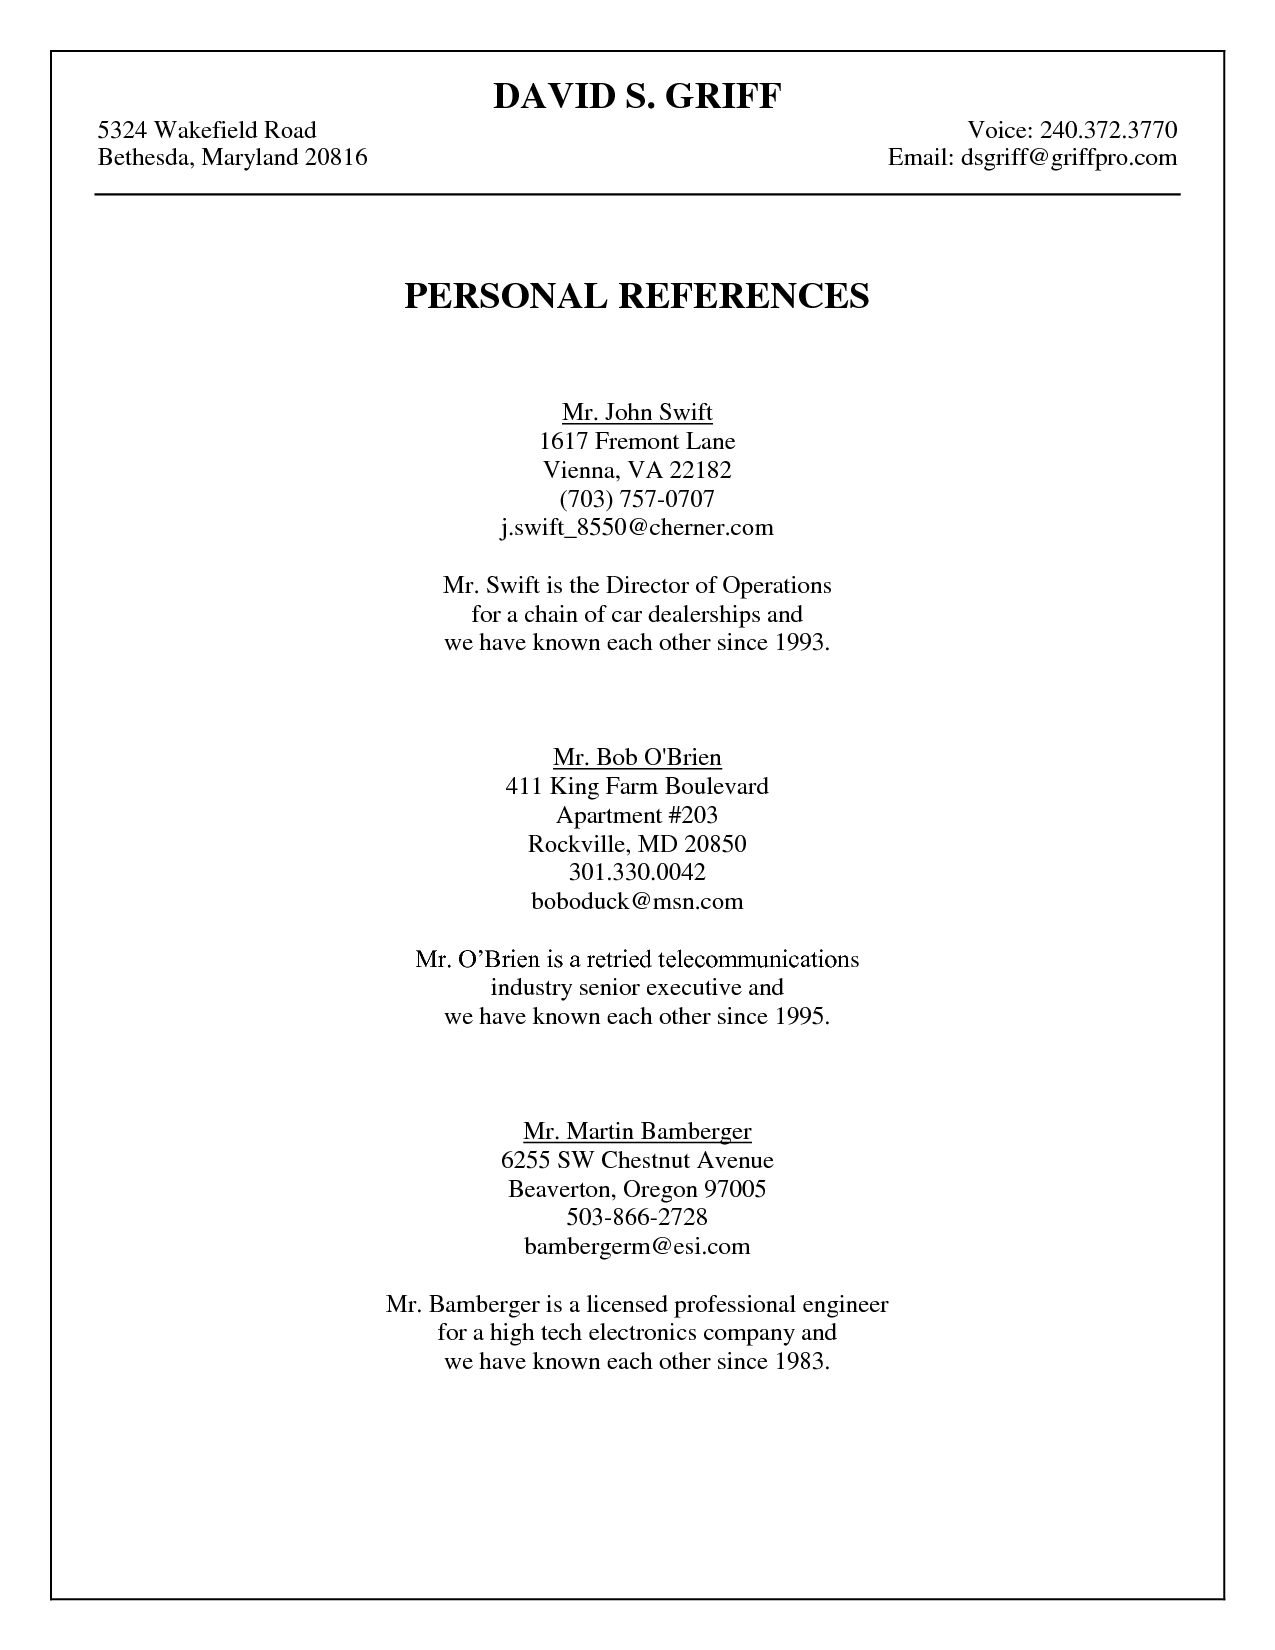 Personal Reference Template  Griff Personal References 071407  organizing  Resume references